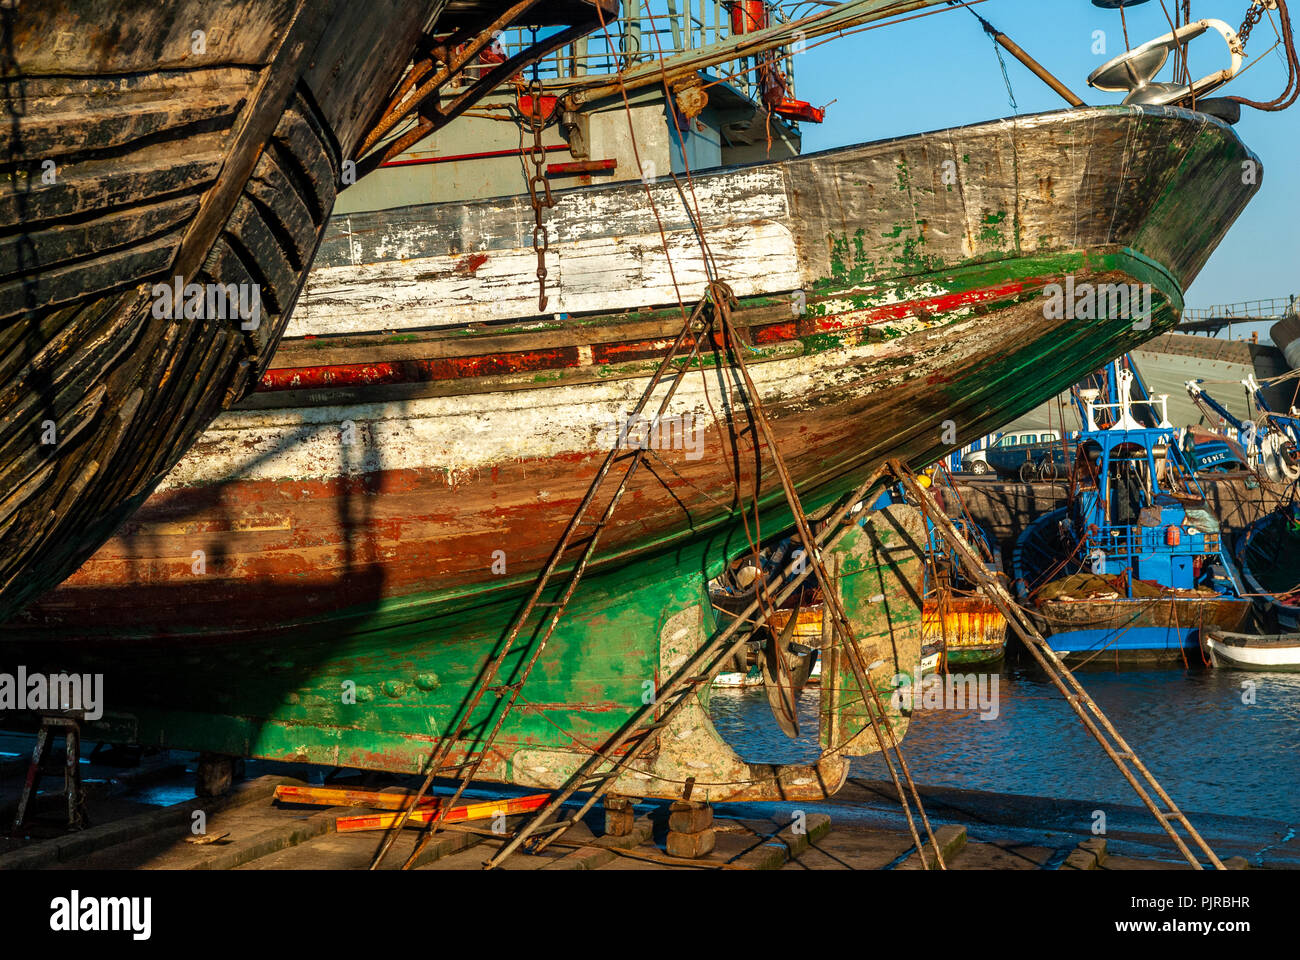 The stern of an old fishing boat under repair on a dock at the port of Essaouira in Morocco - Stock Image